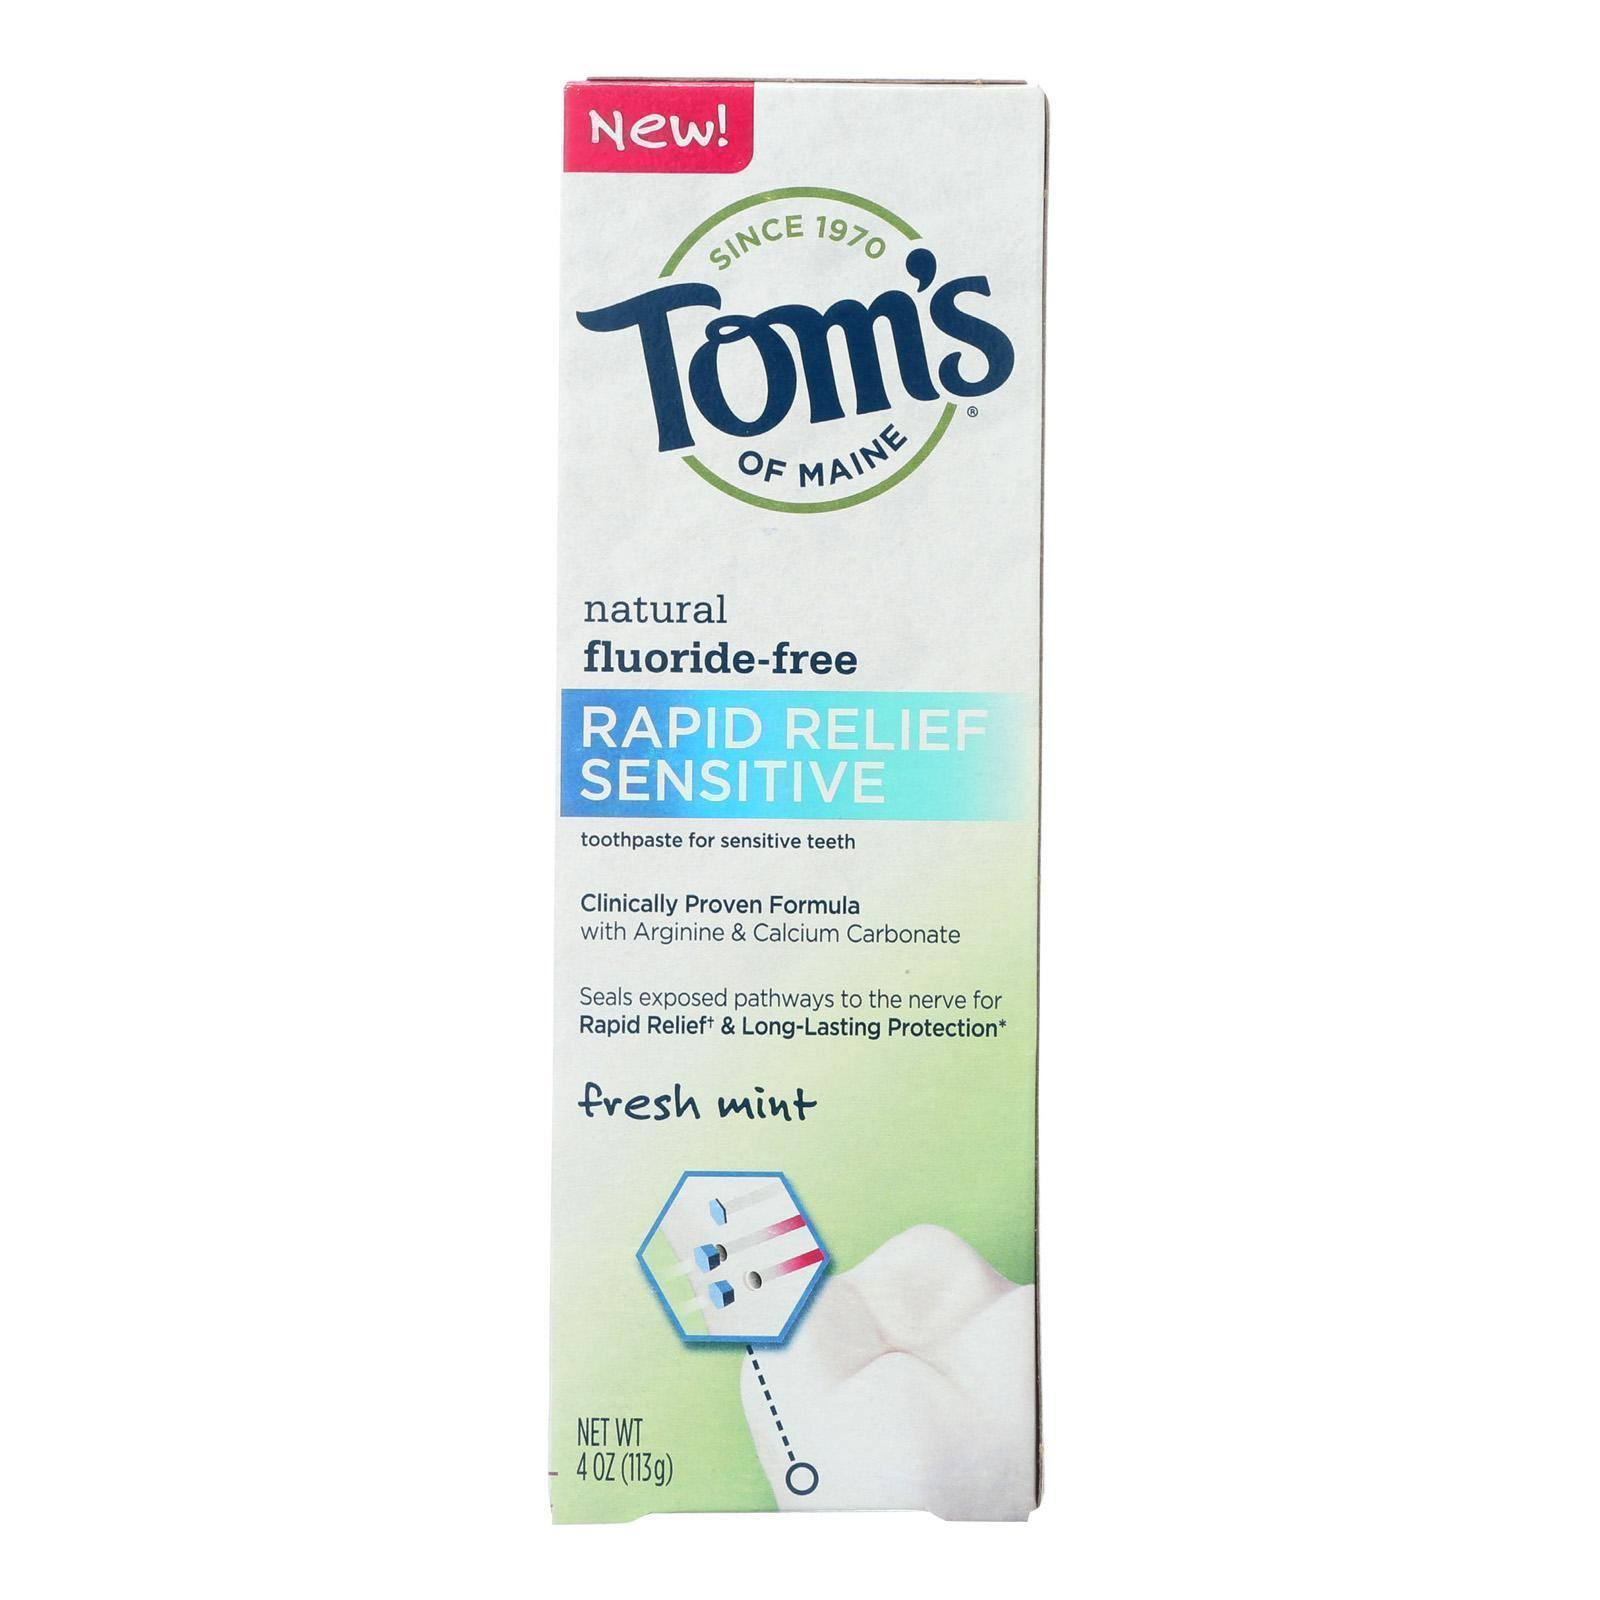 Tom's of Maine Rapid Relief Sensitive Toothpaste - Fresh Mint